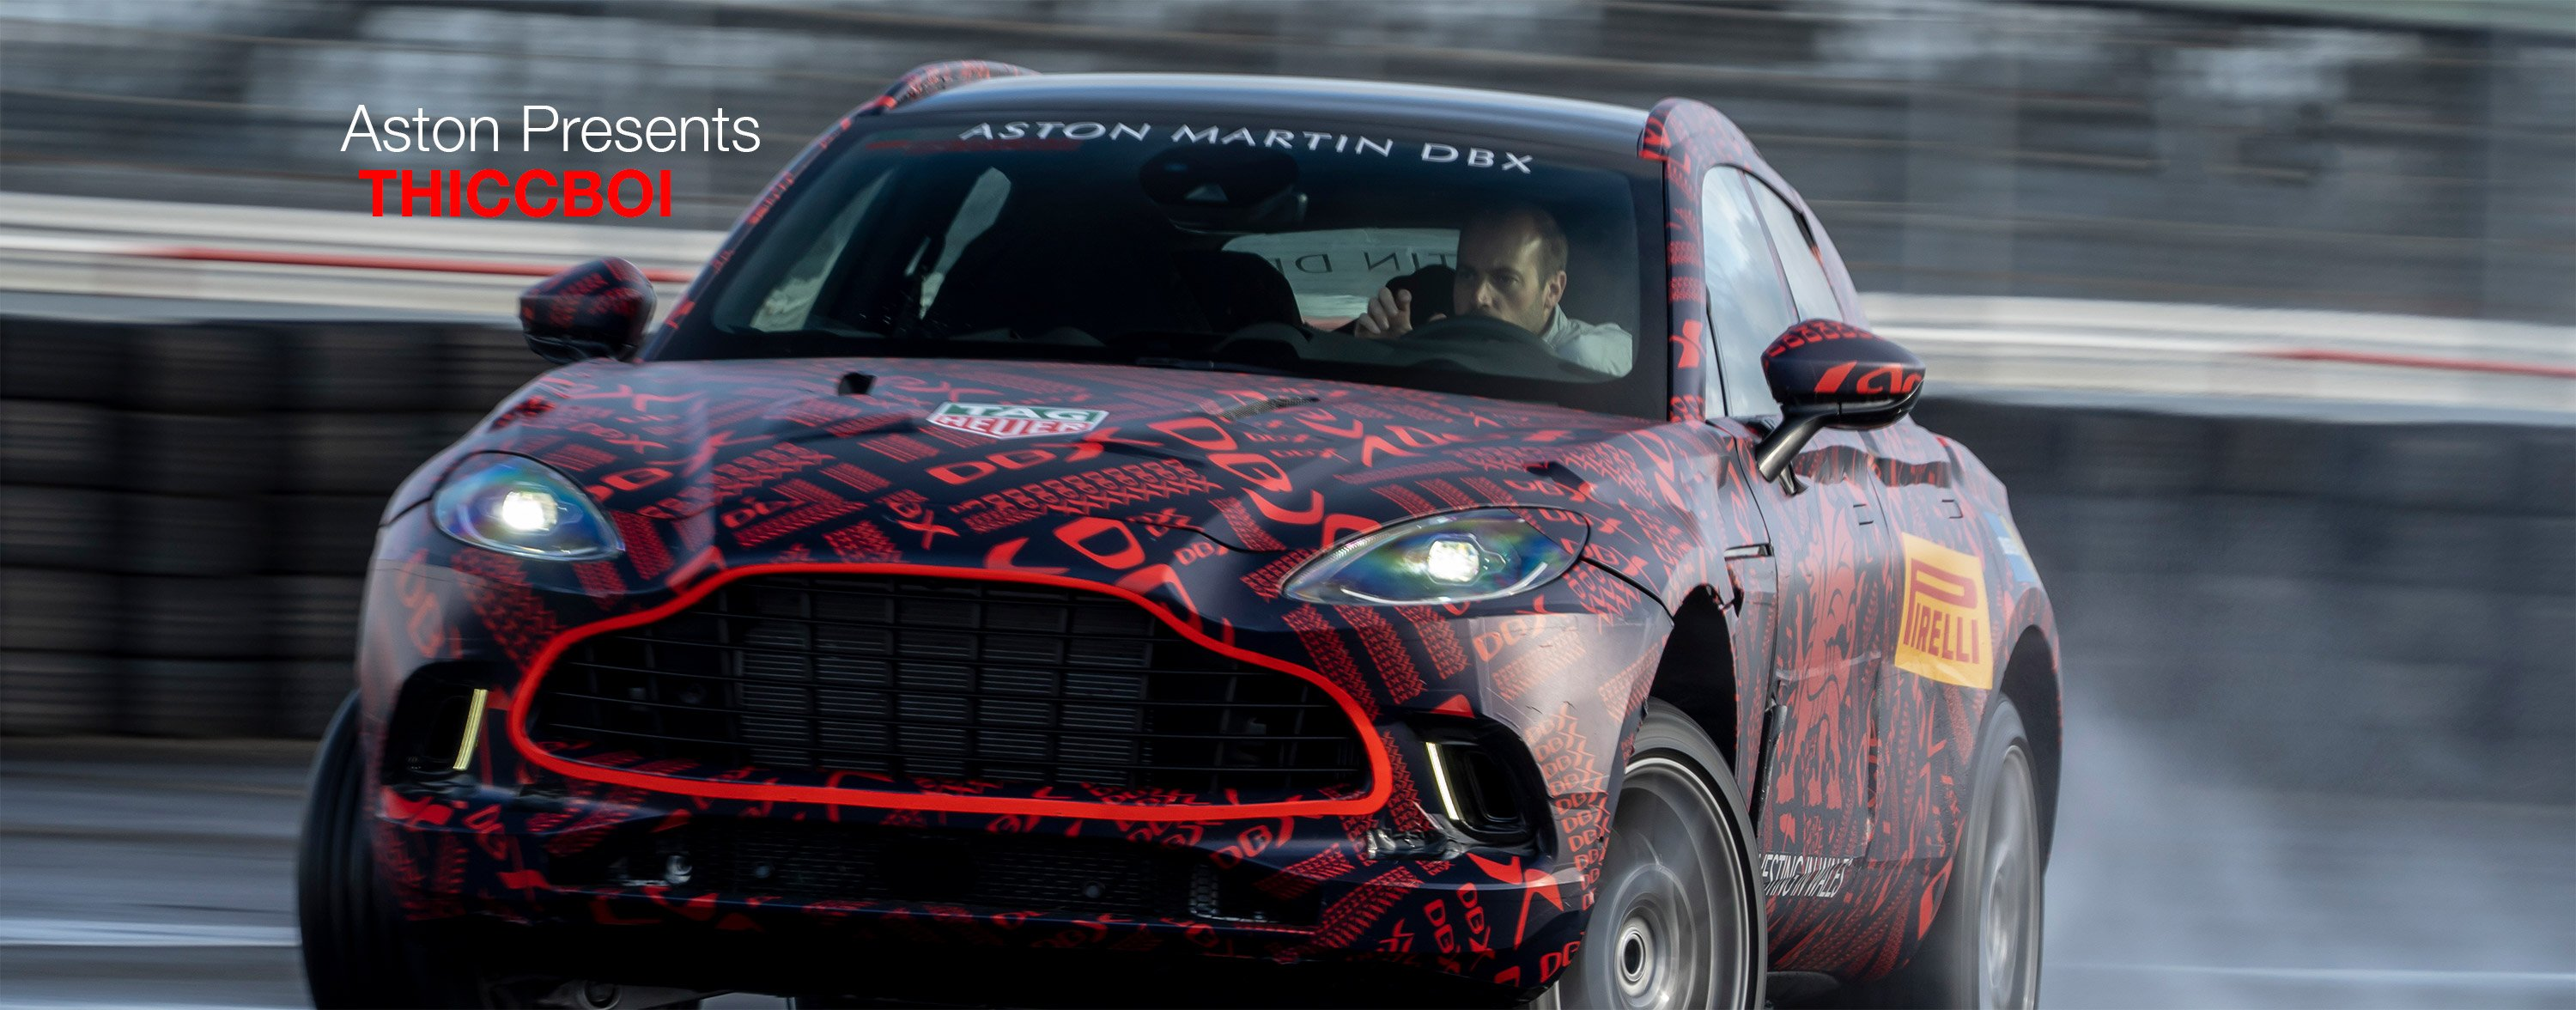 Aston Martin DBX nears full reveal